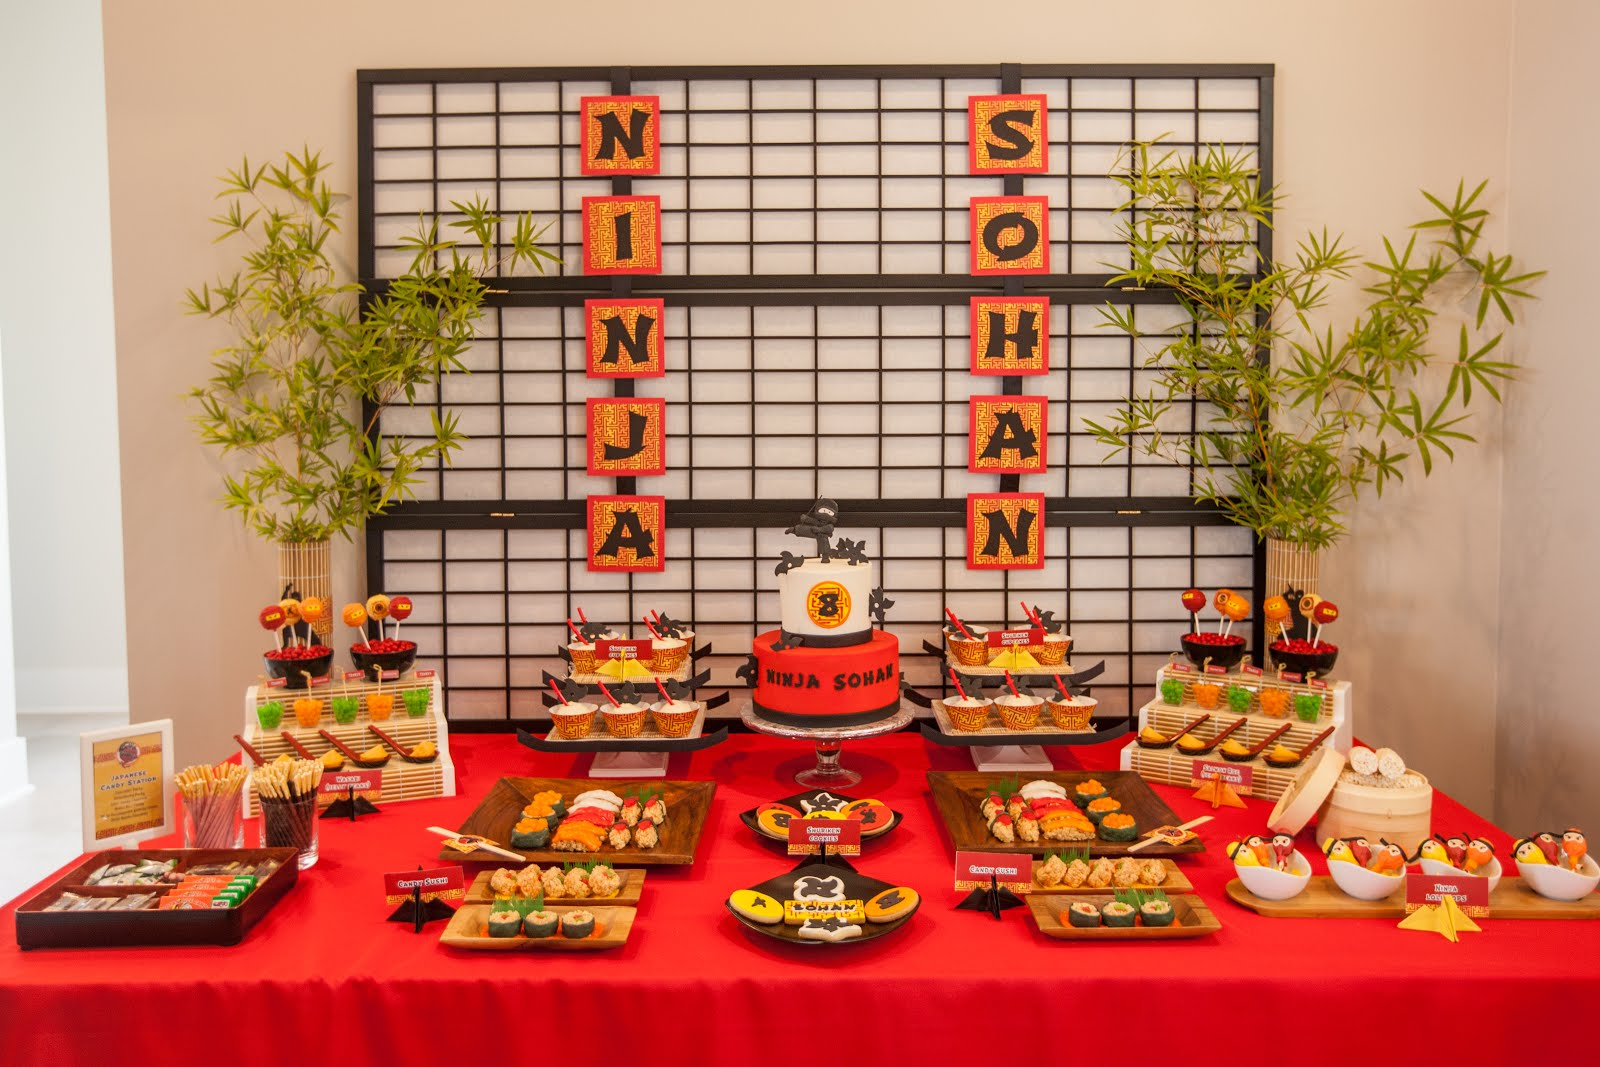 Japanese Birthday Party Traditions Image Inspiration of Cake and